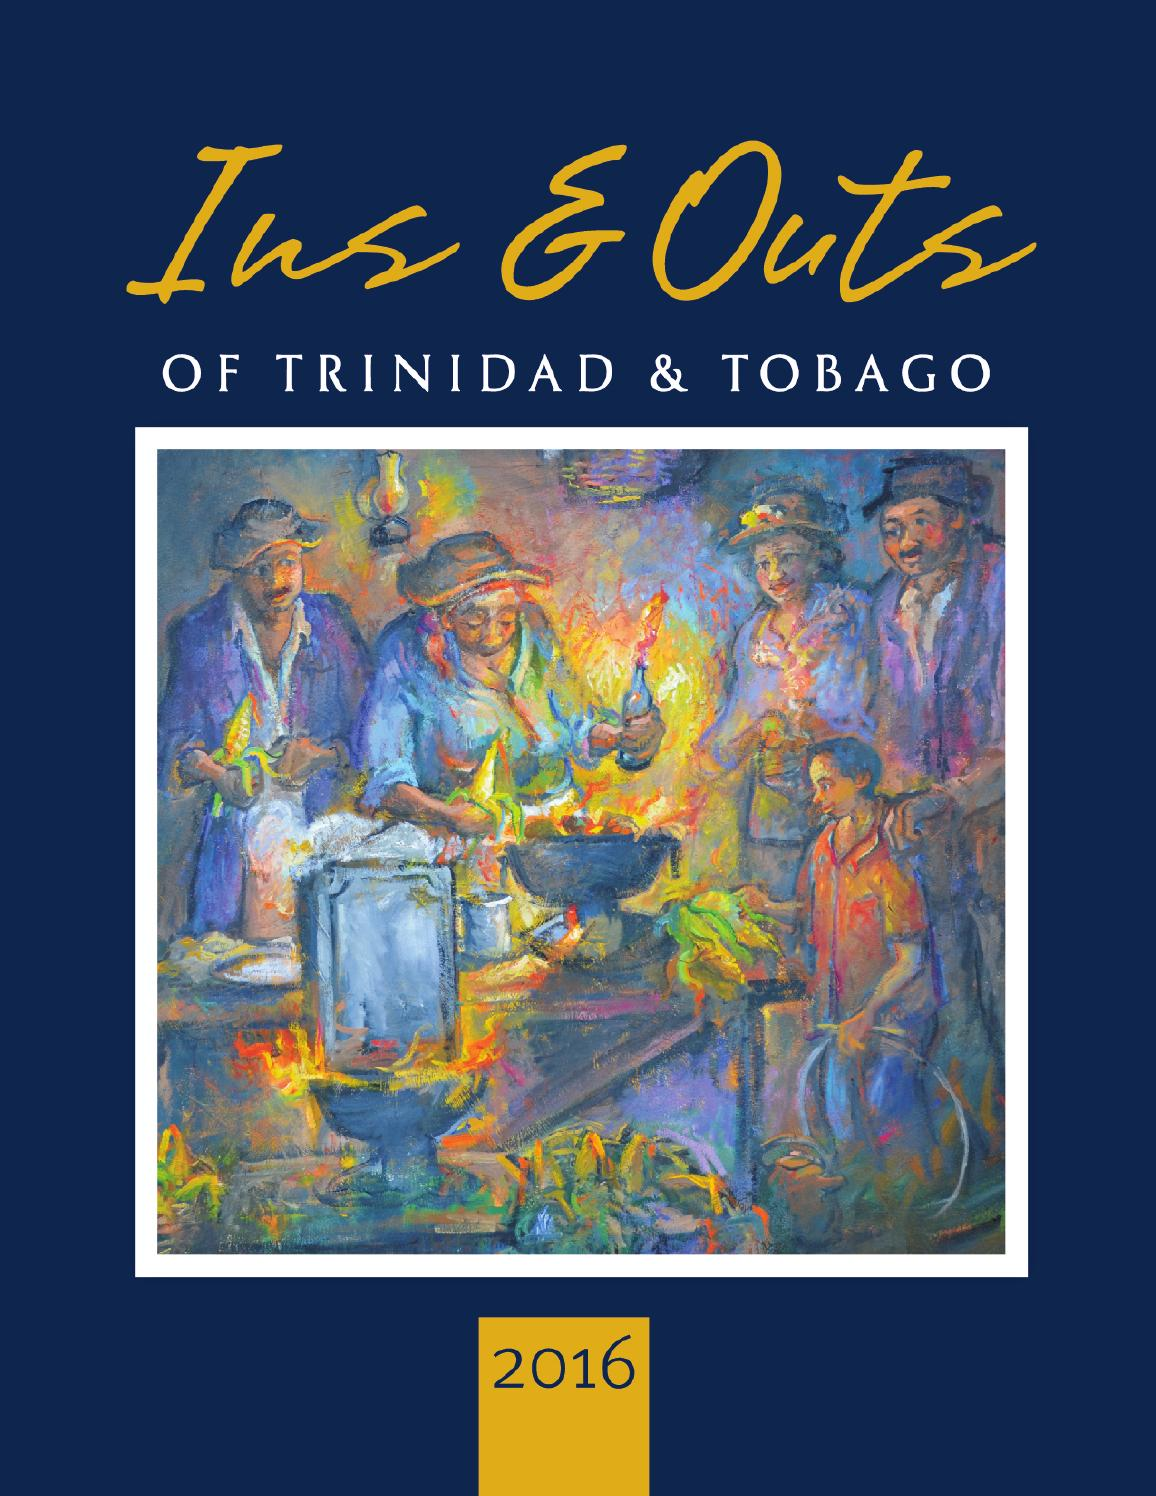 d6ef25ae2a4 Ins and Outs of Trinidad and Tobago 2016 by Prestige Business Publications  Ltd. - issuu